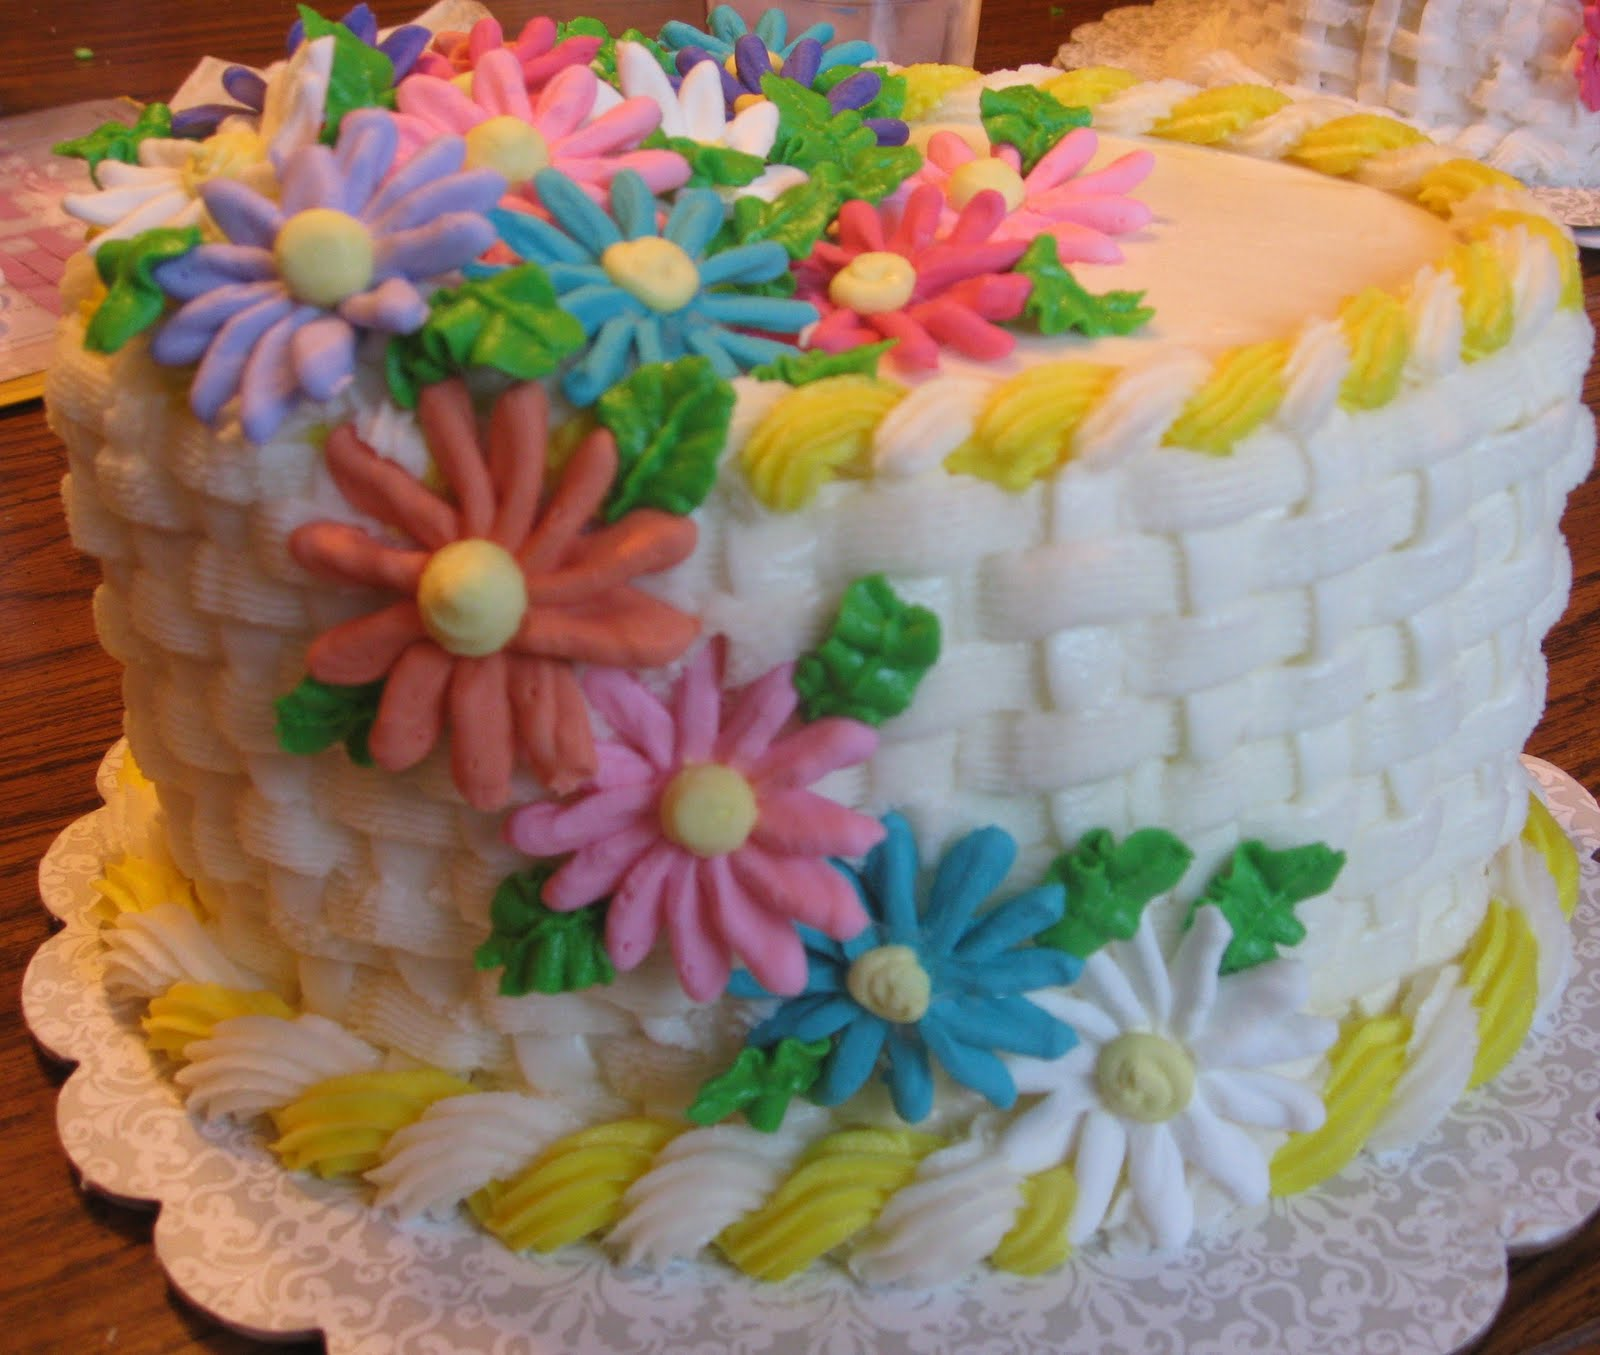 Cake Decorating Classes Fort Collins : Reynolds Family: Cake Class 2 Completed!